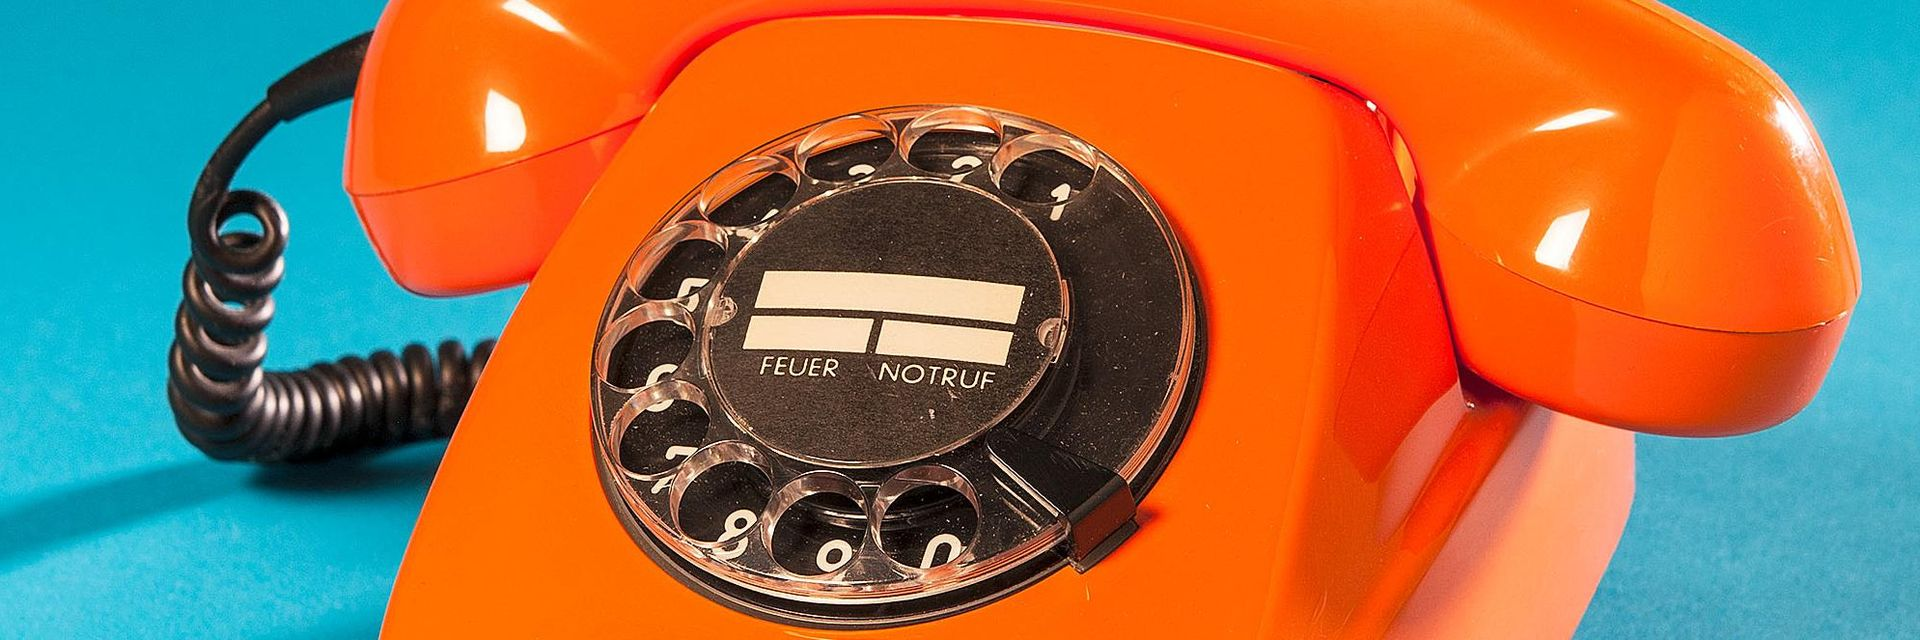 An orange corded telephone with a black rotary dial.